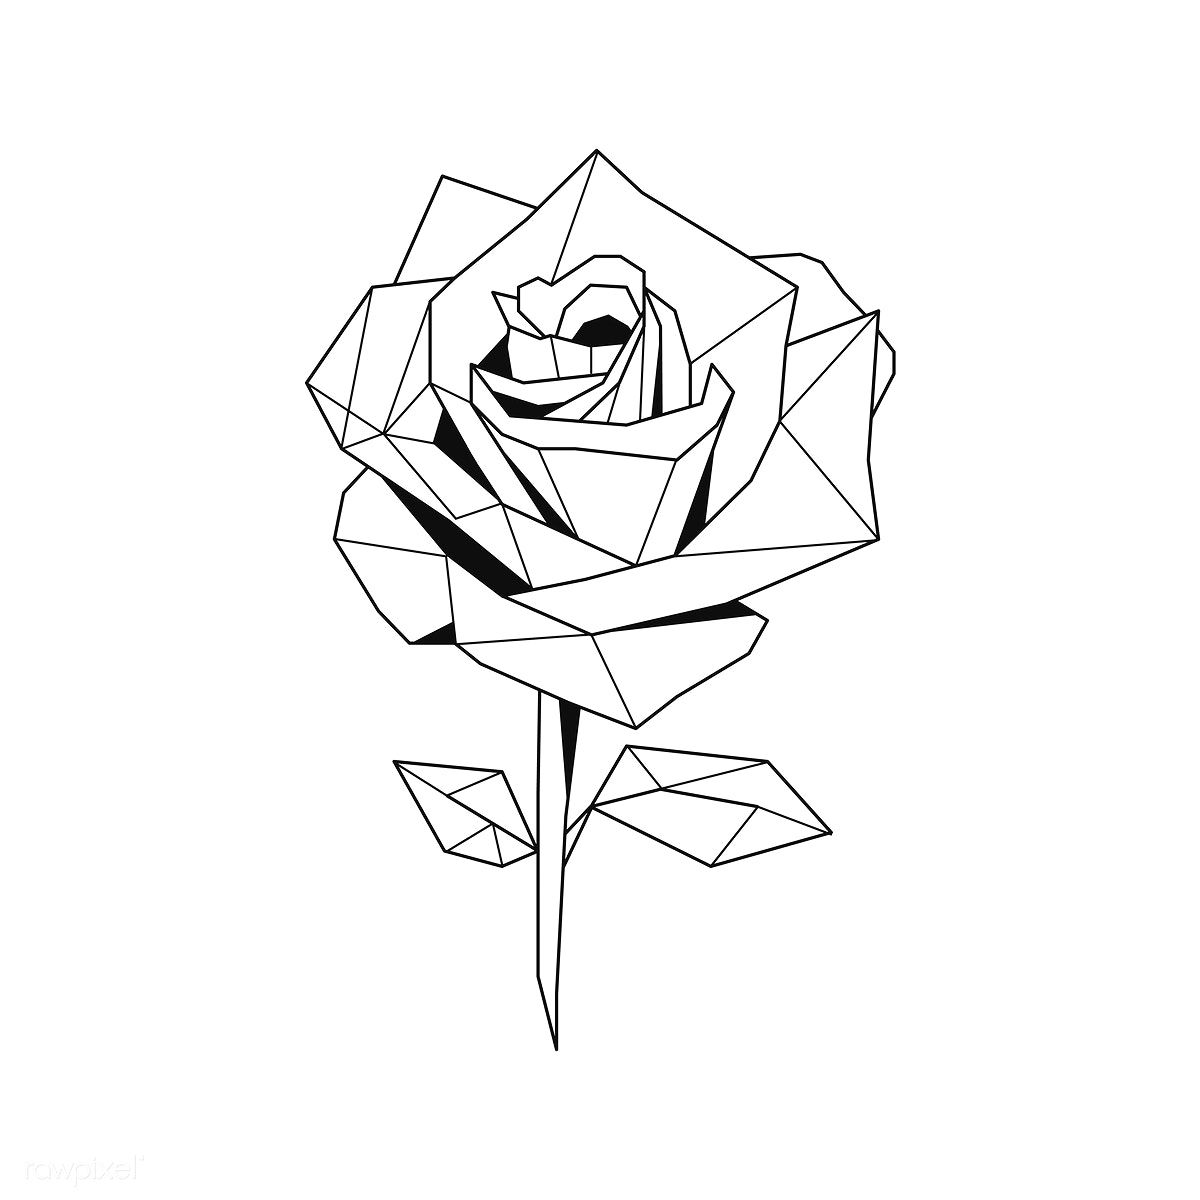 Download premium vector of Linear illustration of a rose flower 518002 -   12 geometric planting Illustration ideas